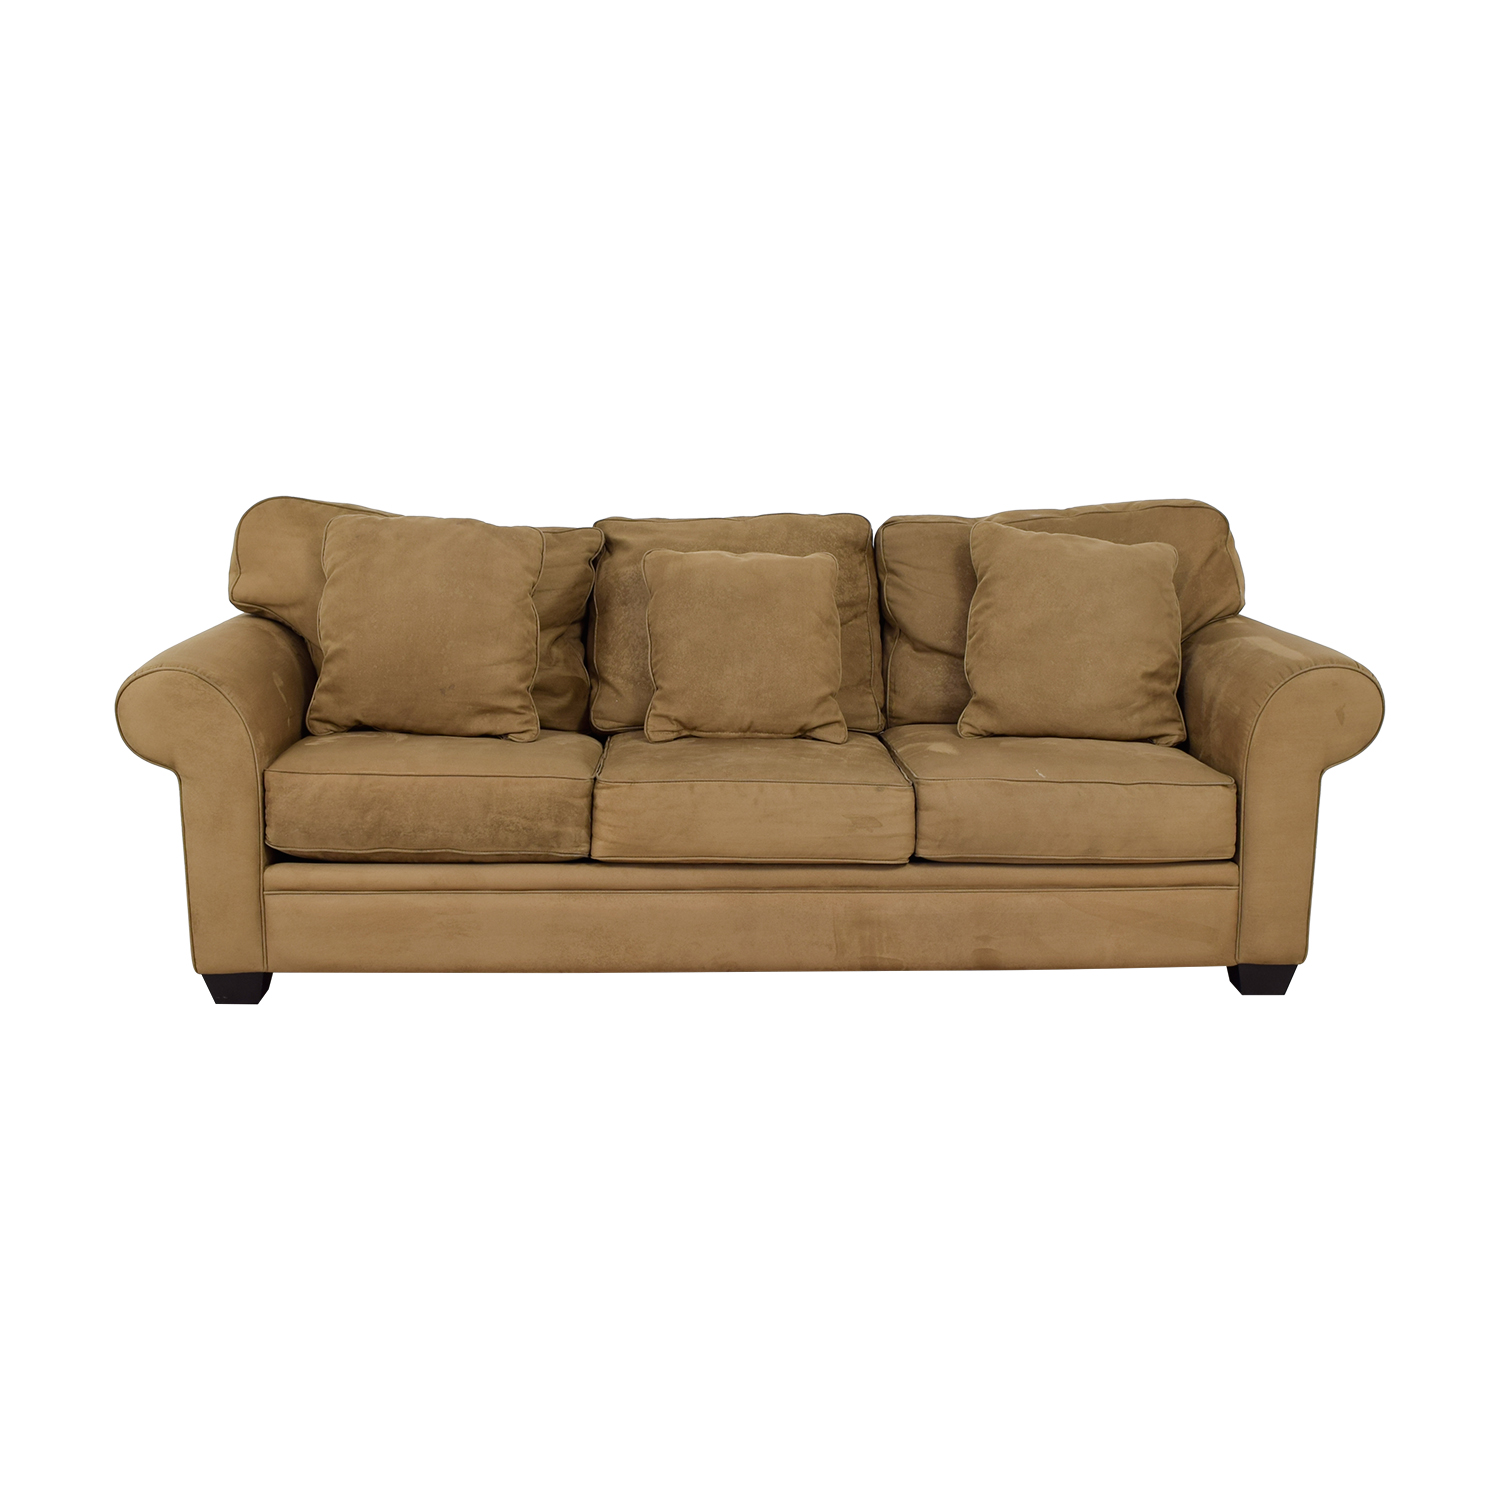 Macy's Macy's Brown Microfiber Three-Cushion Couch dimensions